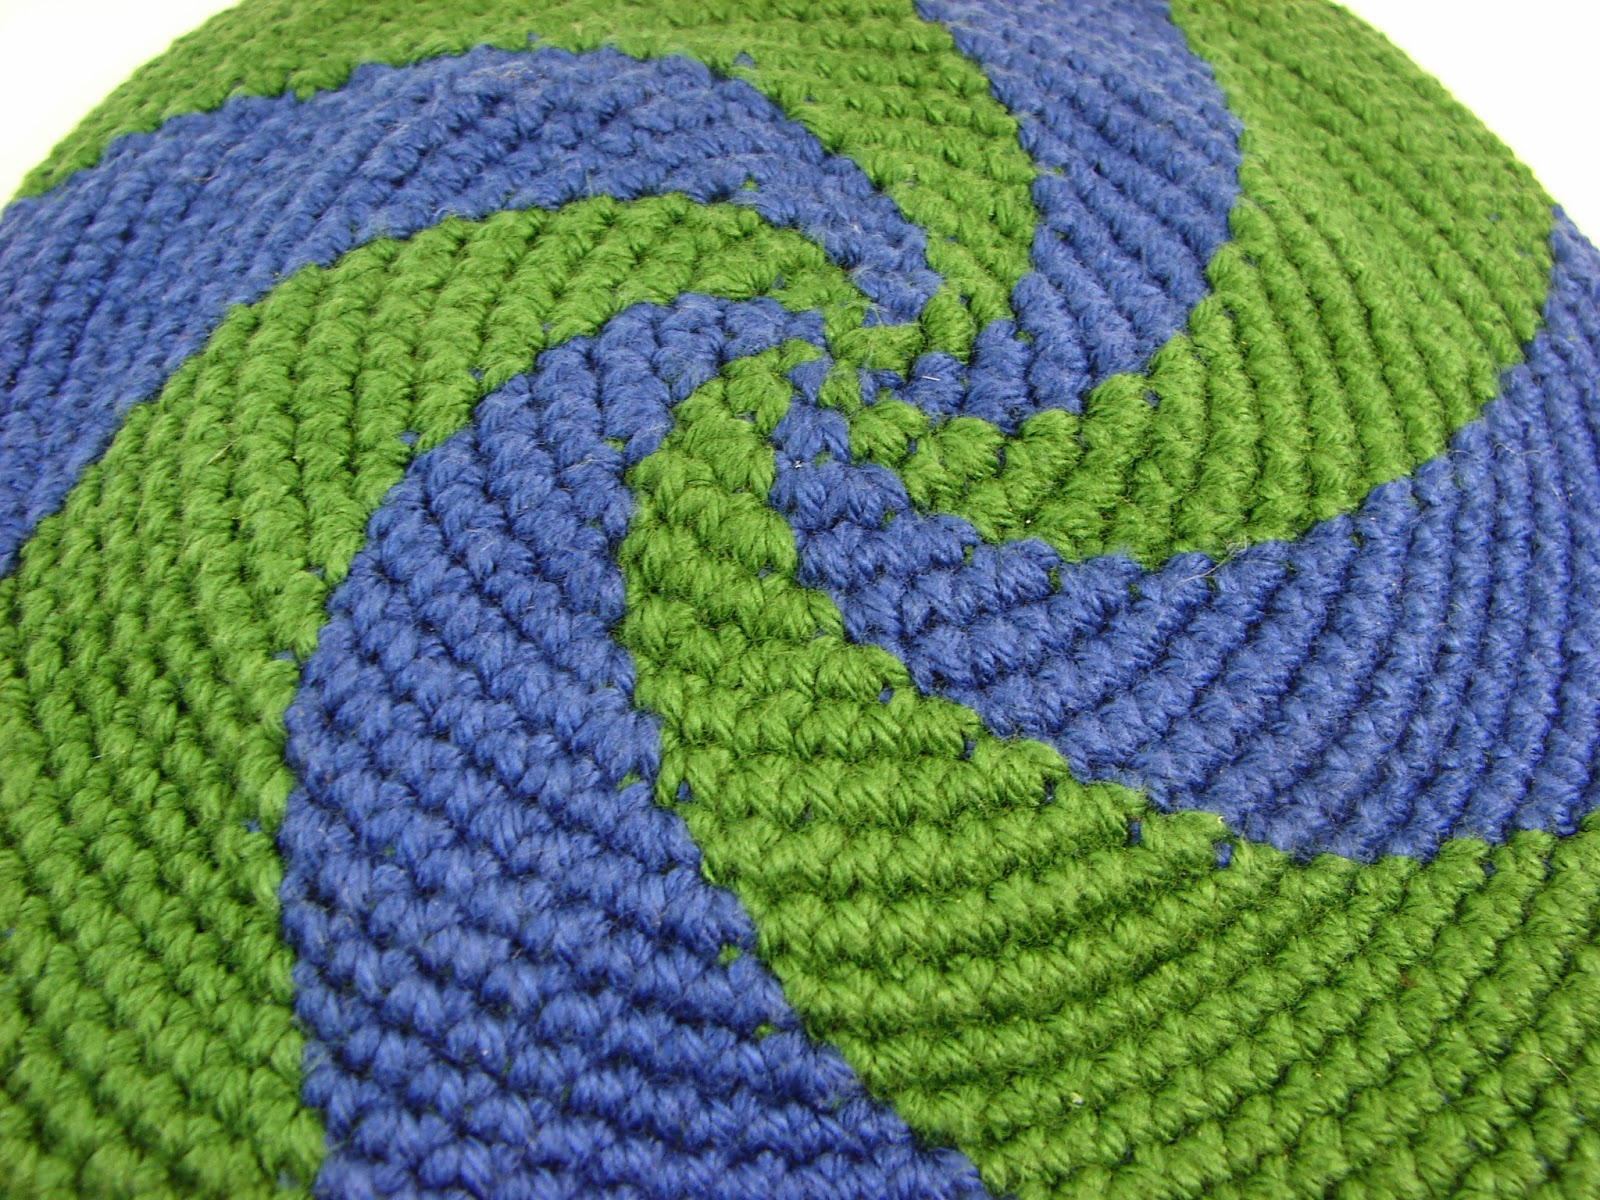 disc, frisbee, crochet, crocheted, toy, blue, green